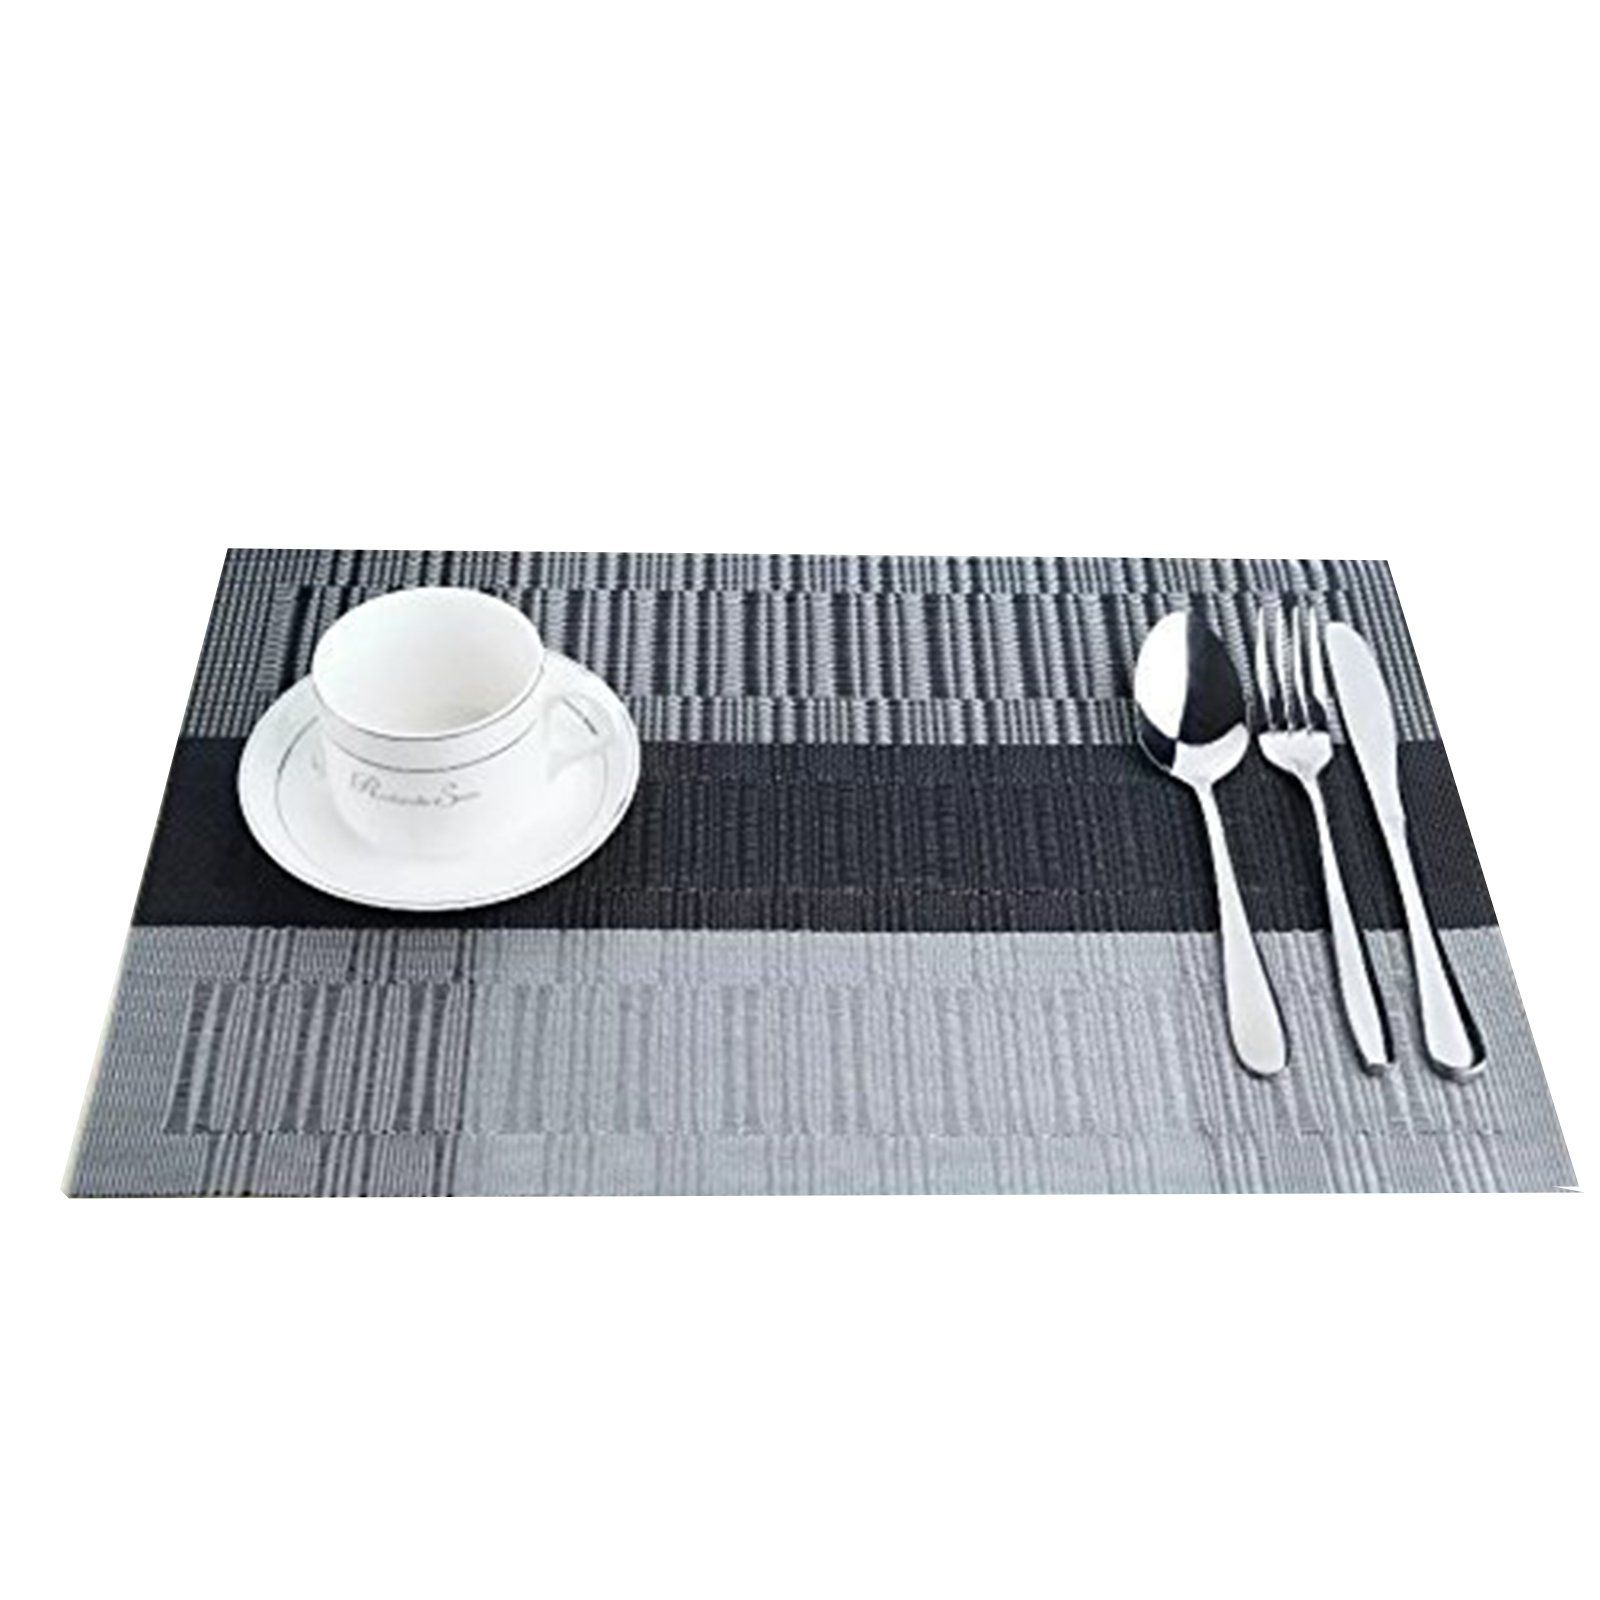 Pvc Placemats Beautilife Pvc Placemats Woven Vinyl Place Mats For Dinner Table